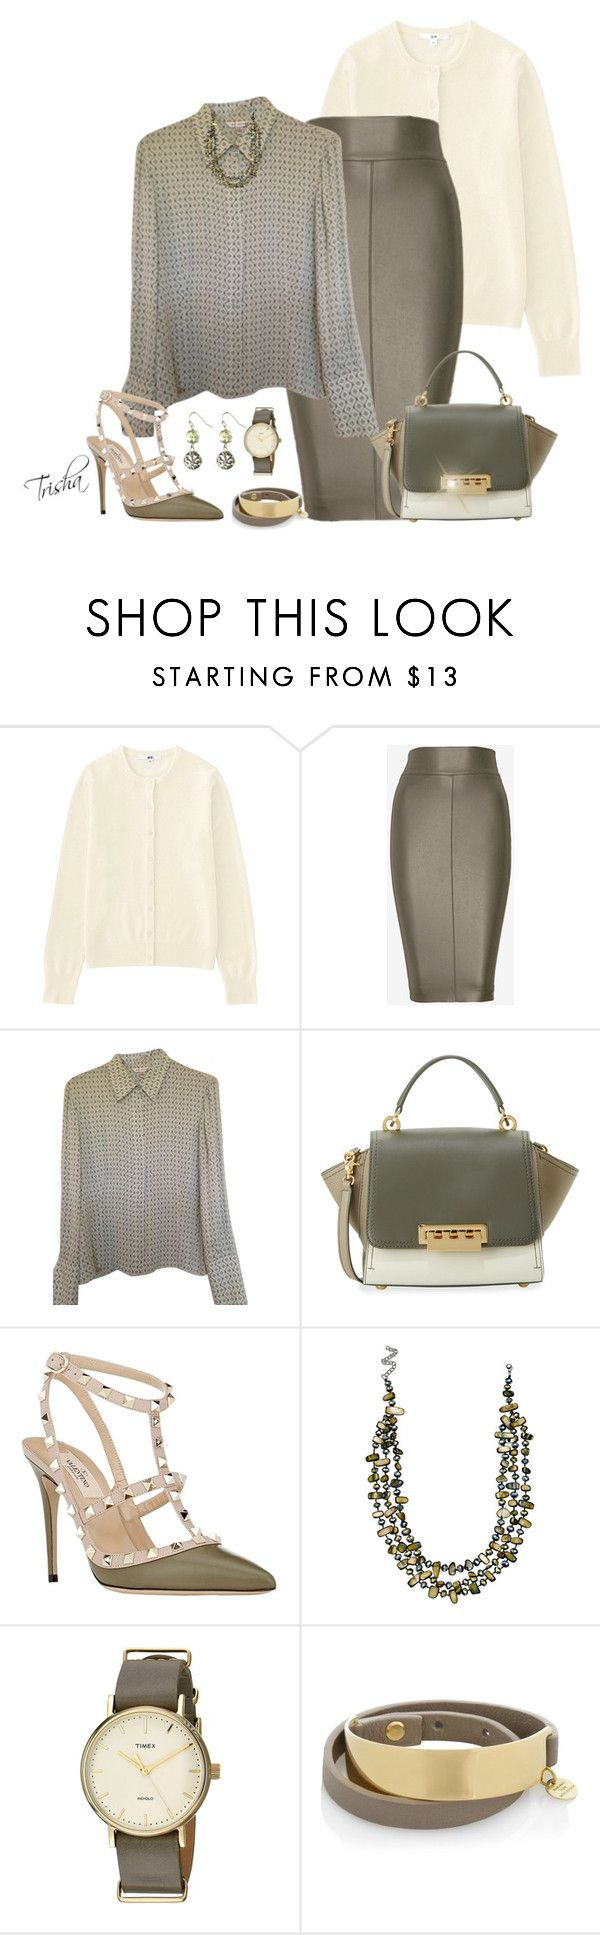 """Workwear"" by pkoff ❤ liked on Polyvore featuring Uniqlo, Bailey 44, St. John, ZAC Zac Posen, Valentino, Mixit, Timex, Marjana von Berlepsch and Avenue"